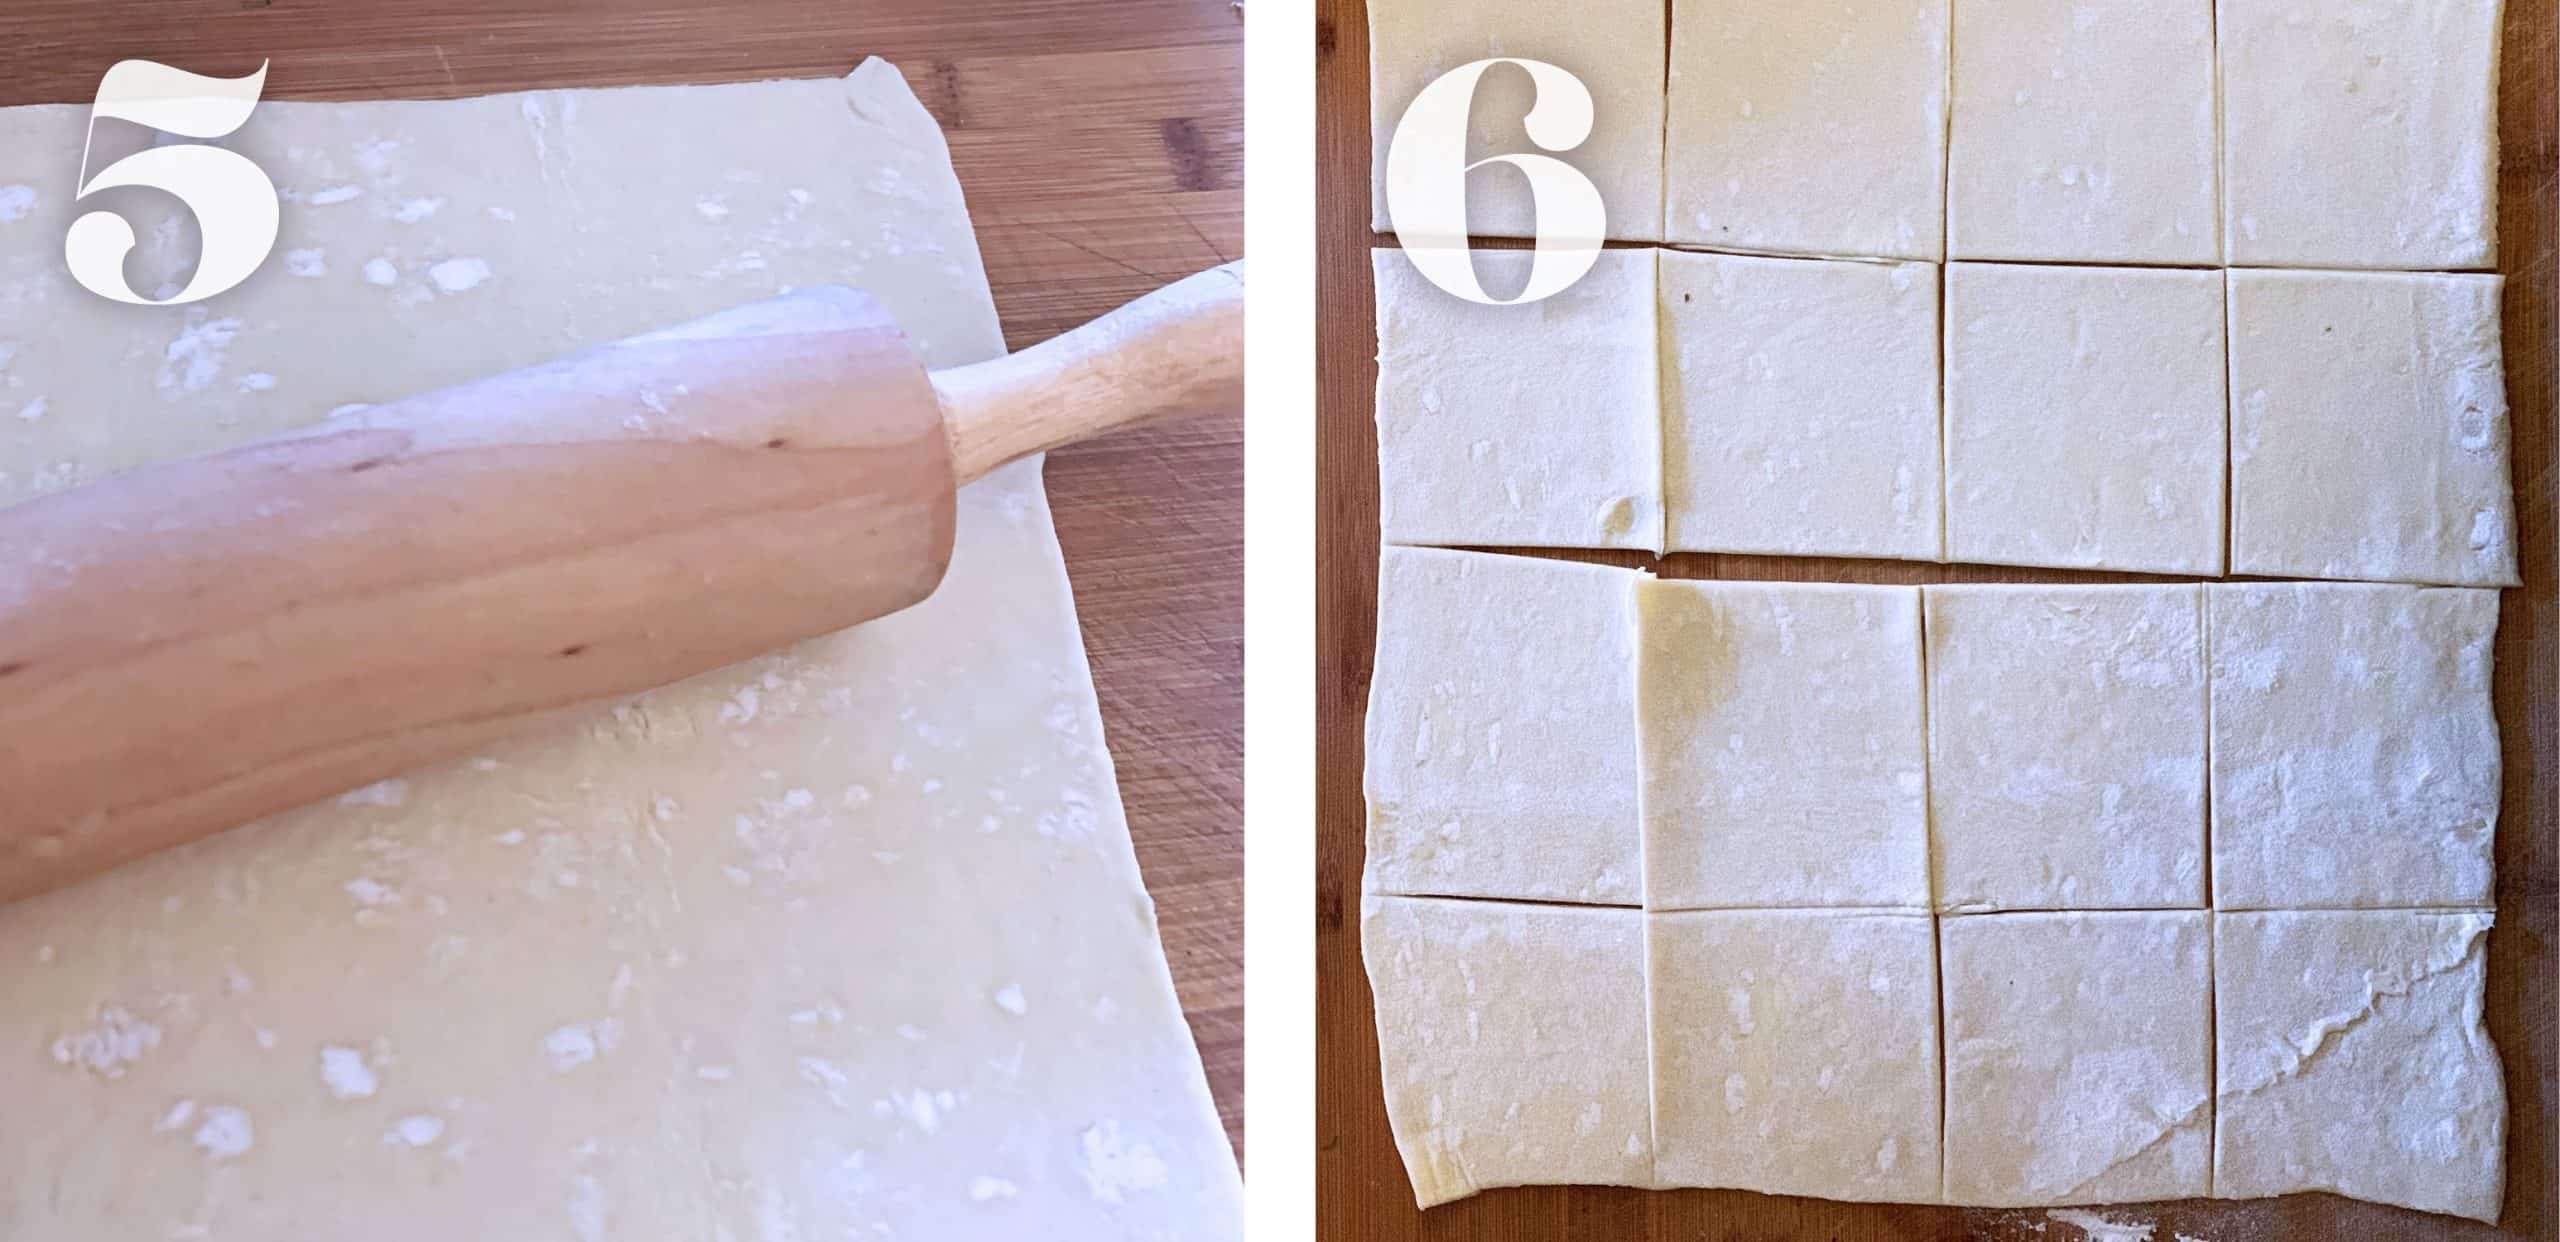 Preparing the puff pastry dough for cheese puff pastries.